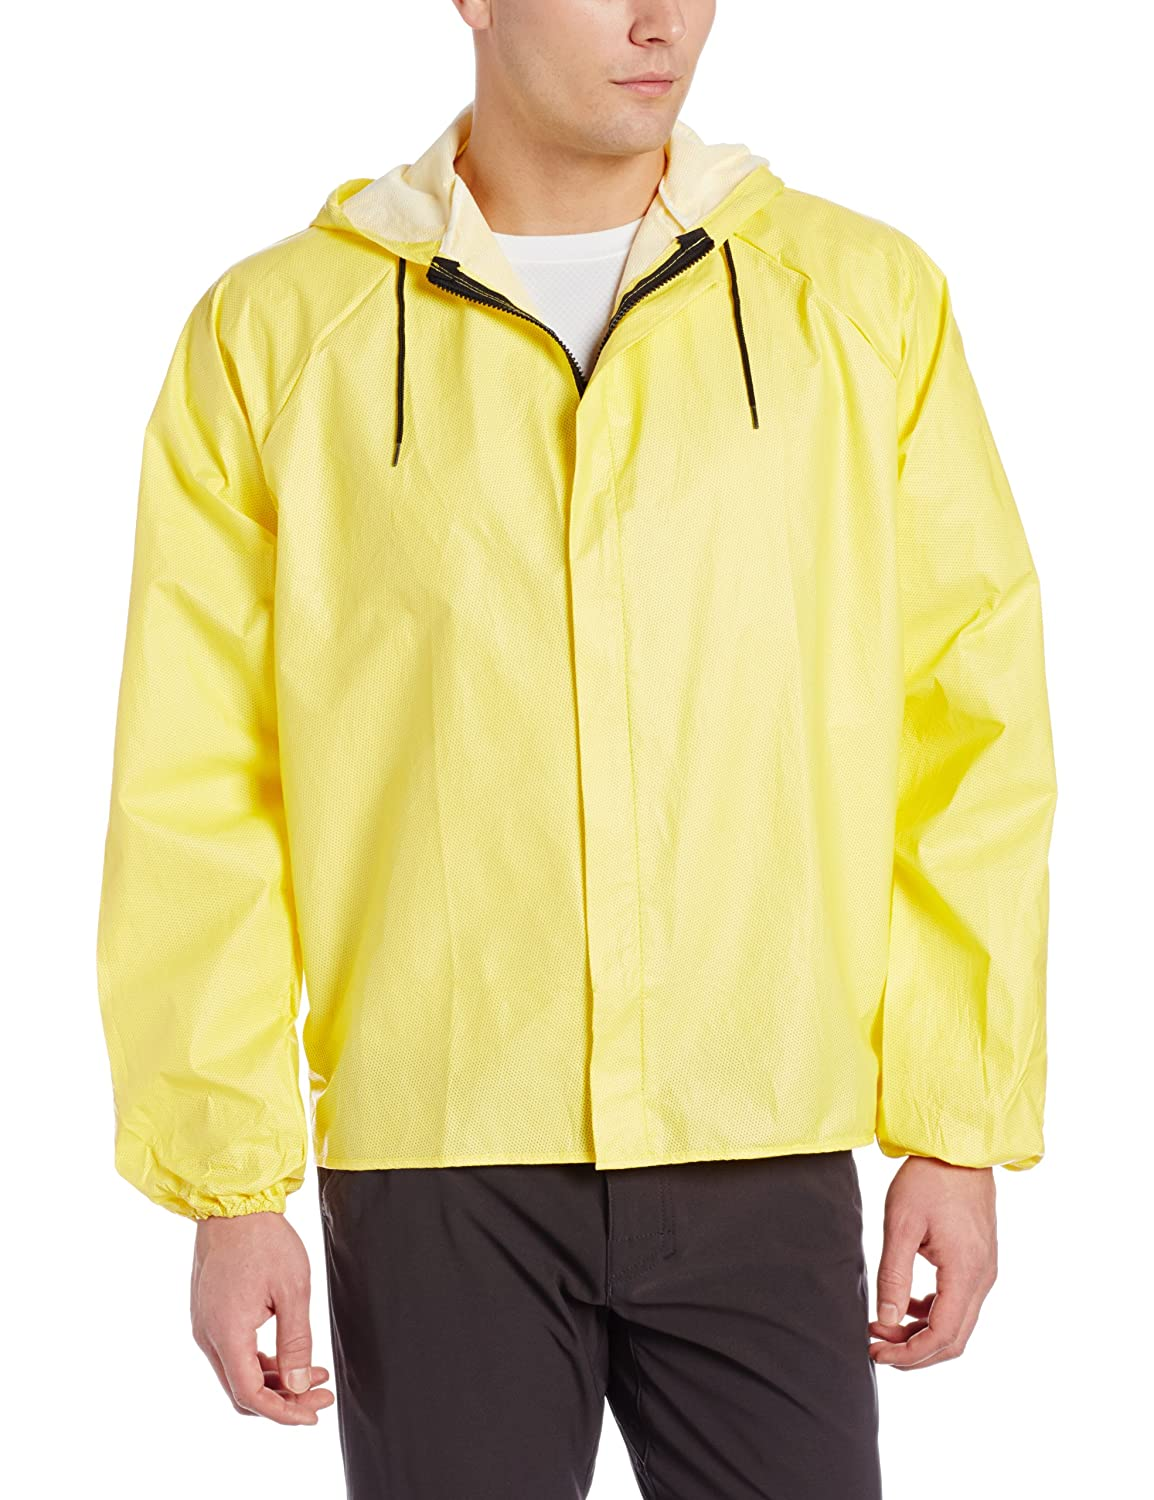 Amazon.com : O2 Rainwear Original Hooded Jacket : Cycling Jackets ...